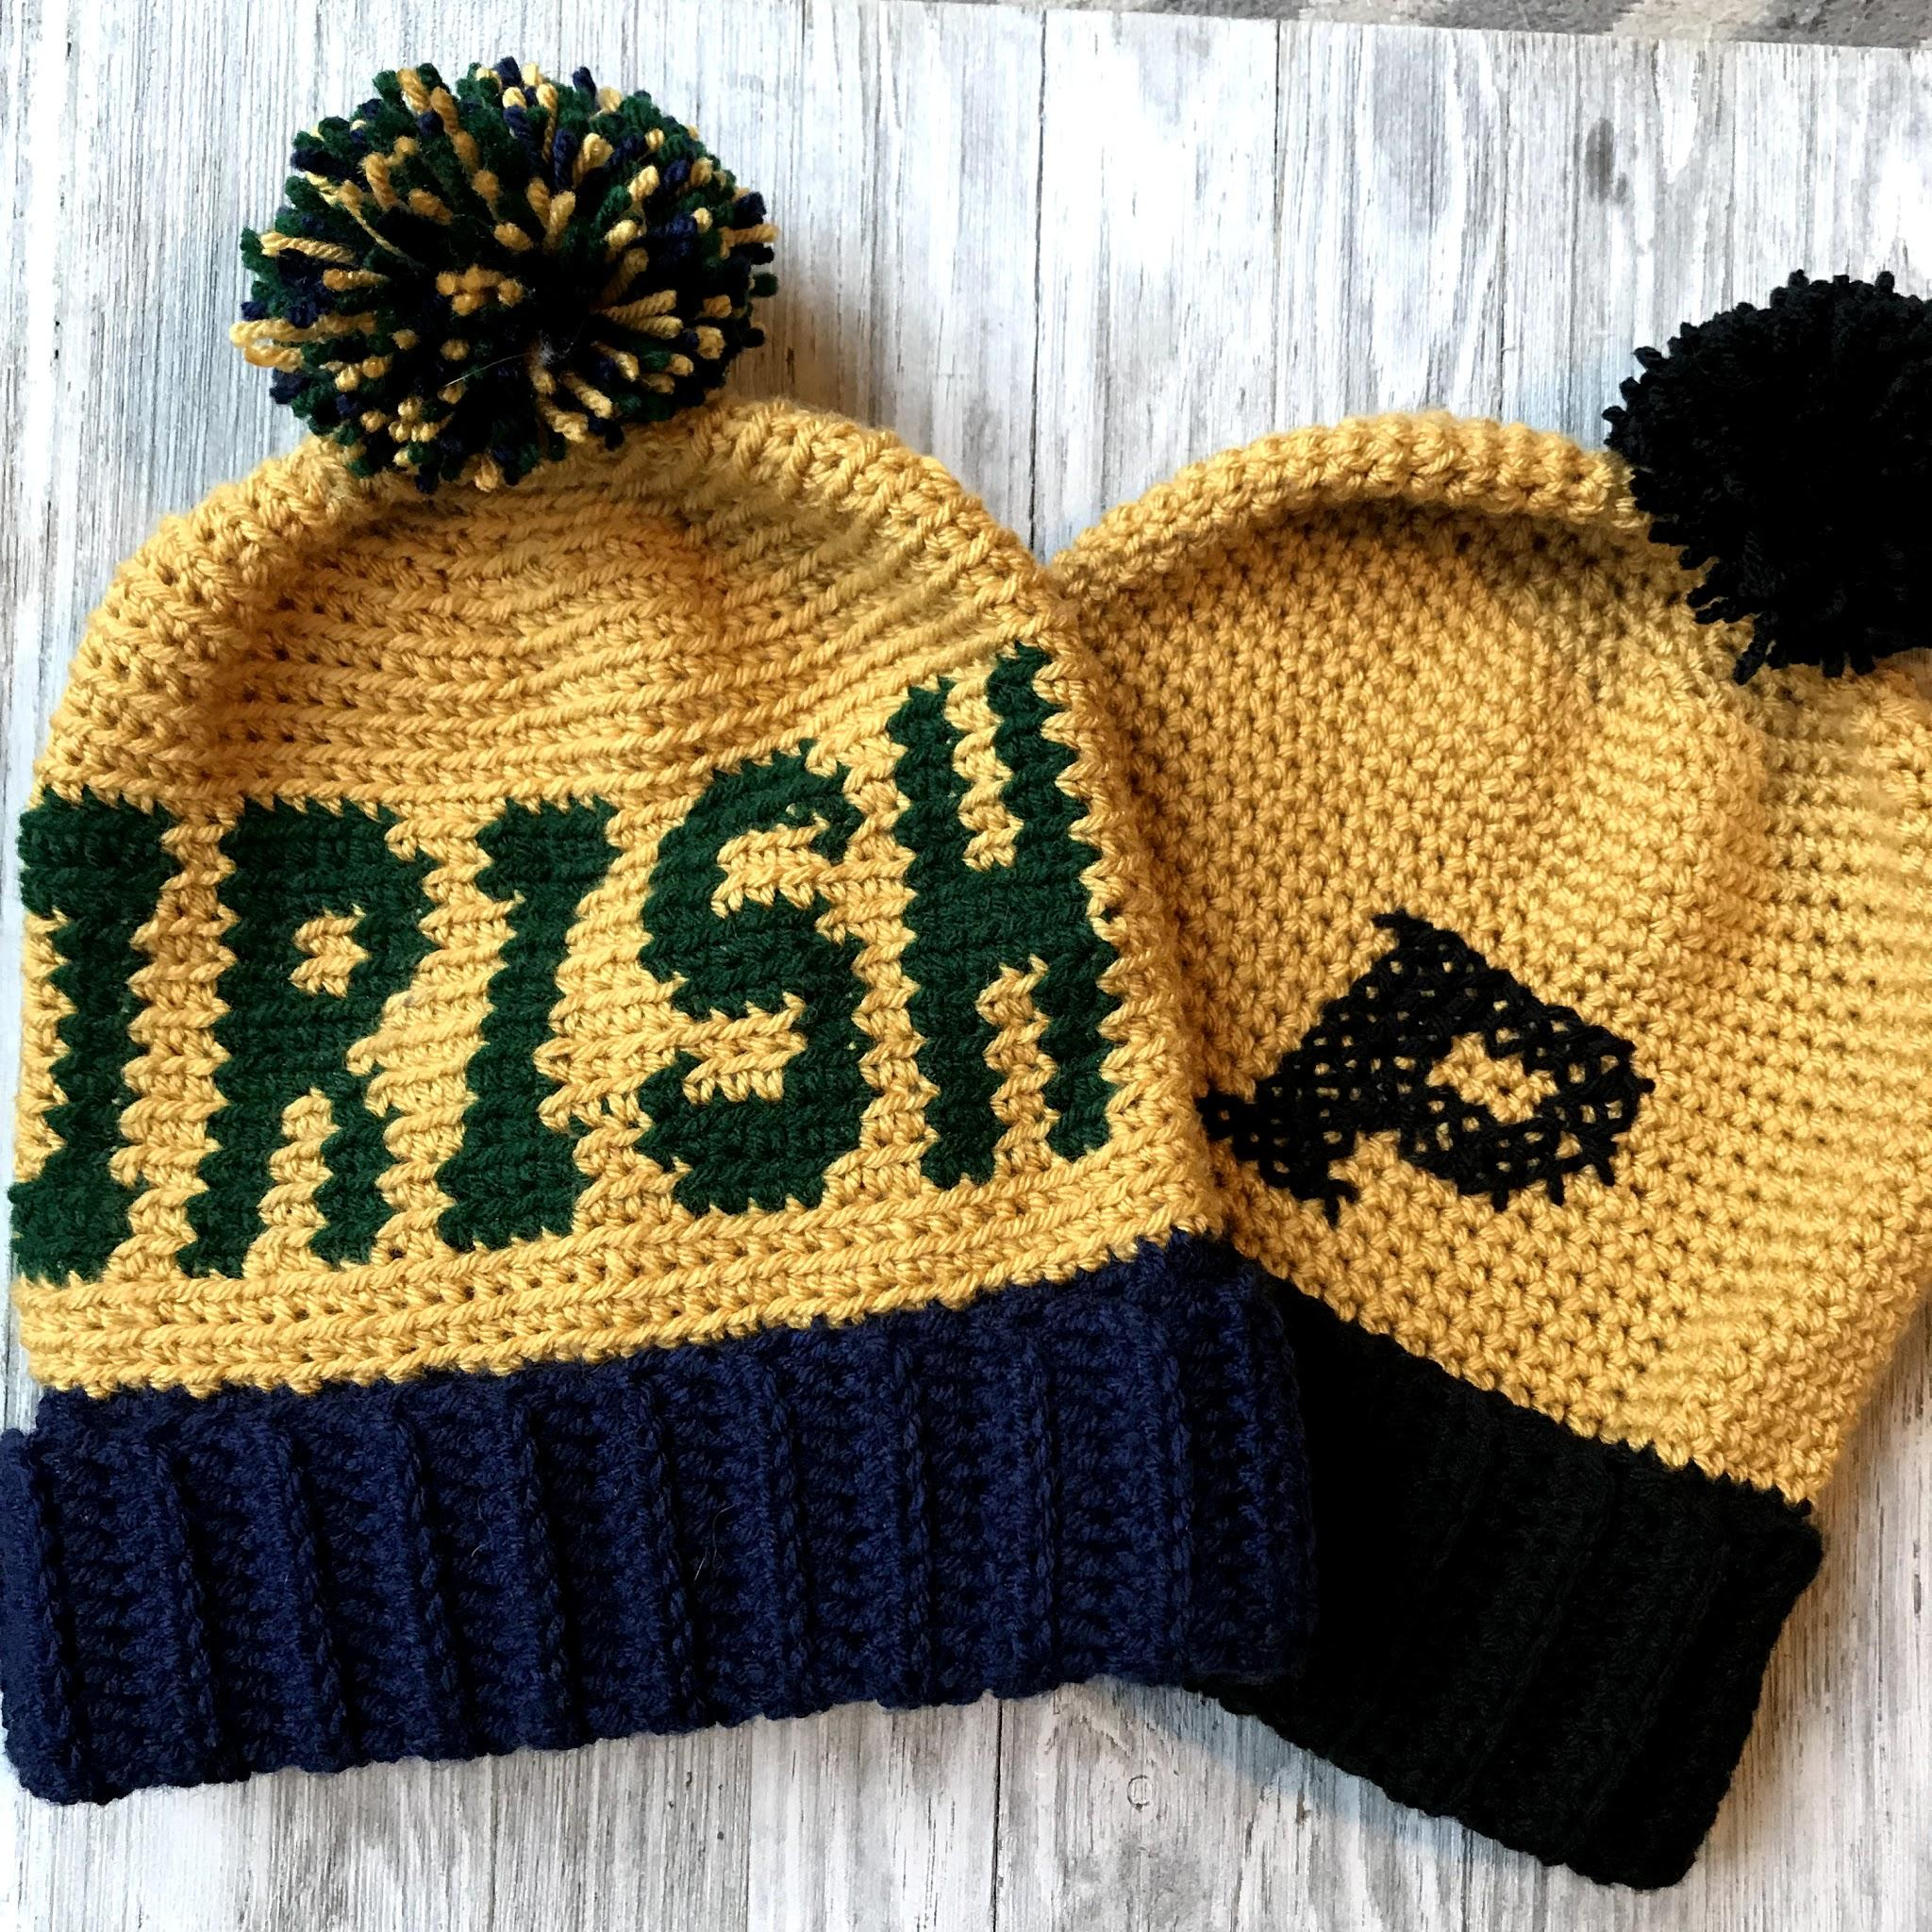 b509a36a2451f5 Game Day Beanie Crochet Pattern by Crochet it Creations